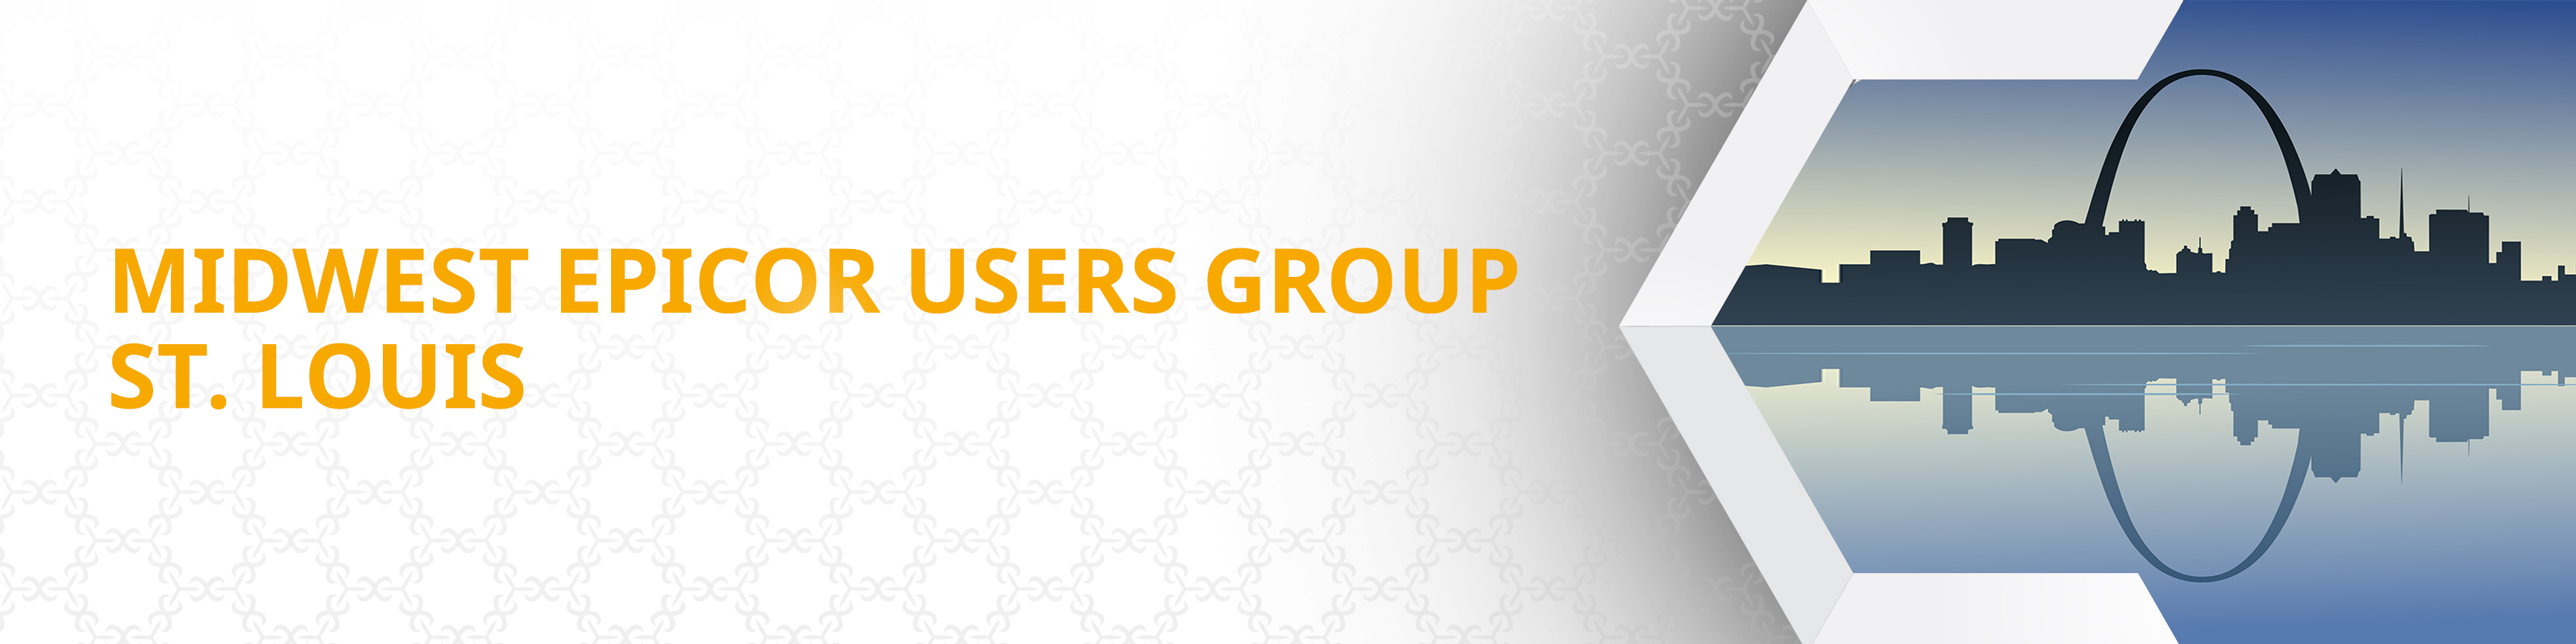 midest-epicor-users-group-header-v2